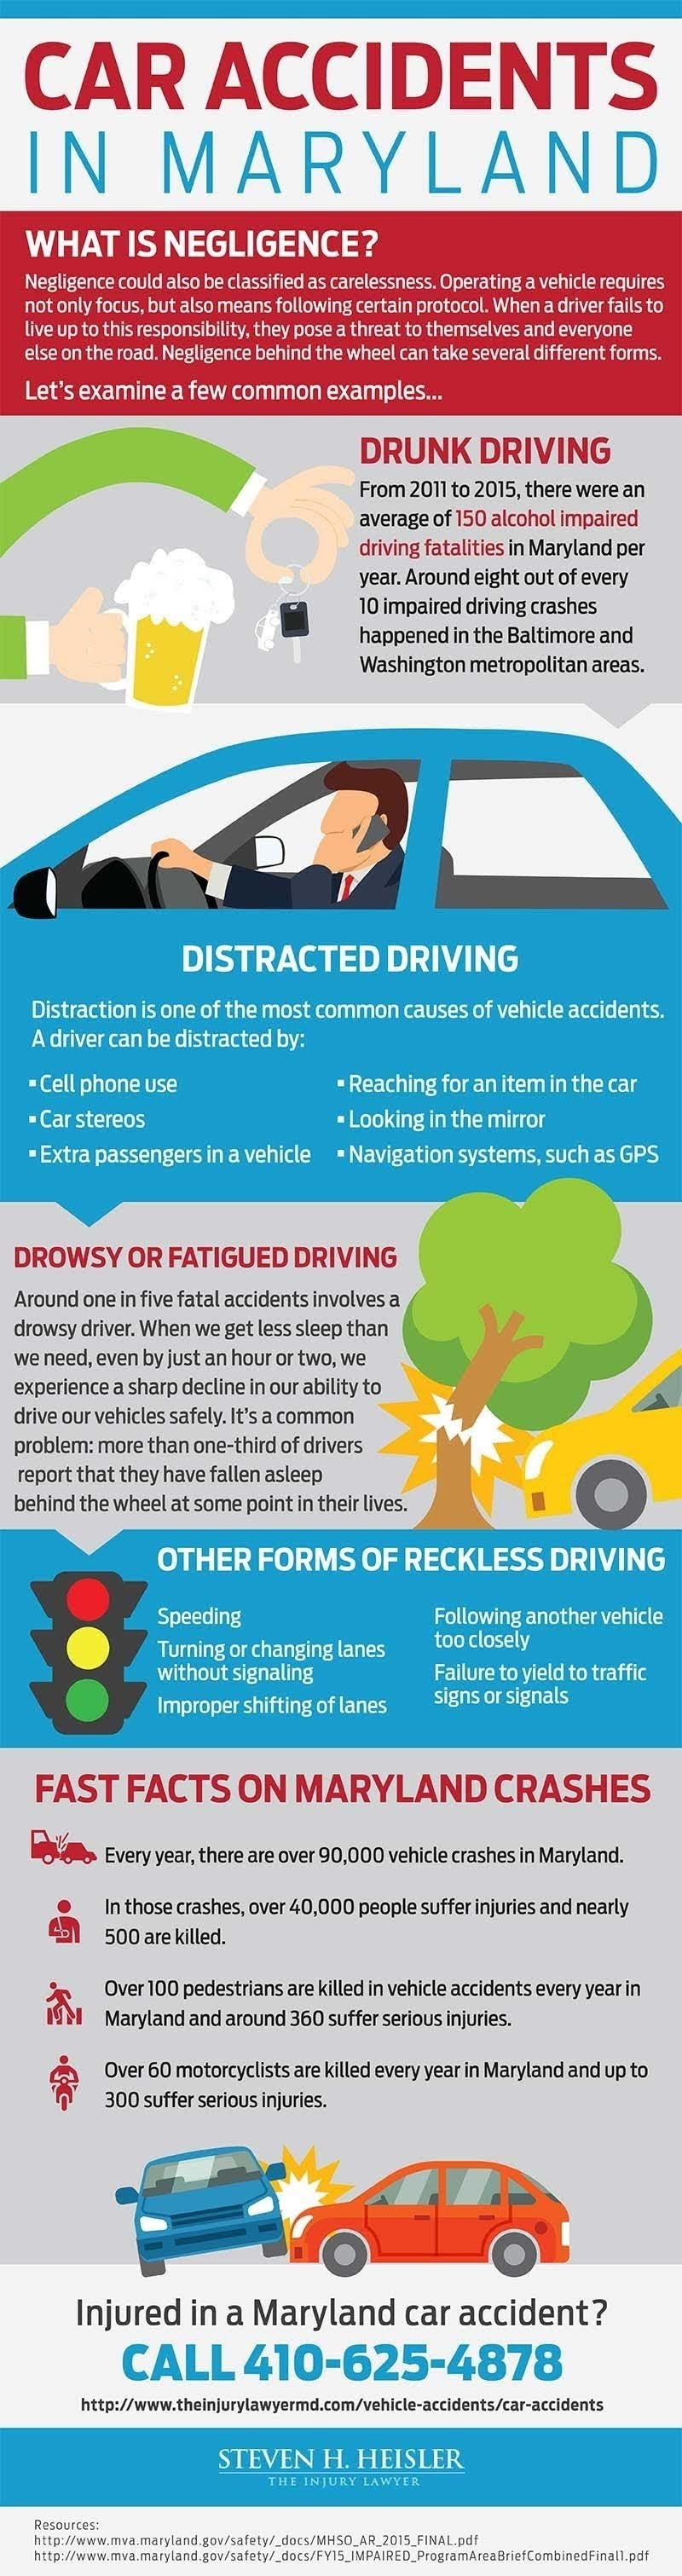 Car crashes in Maryland #infographic